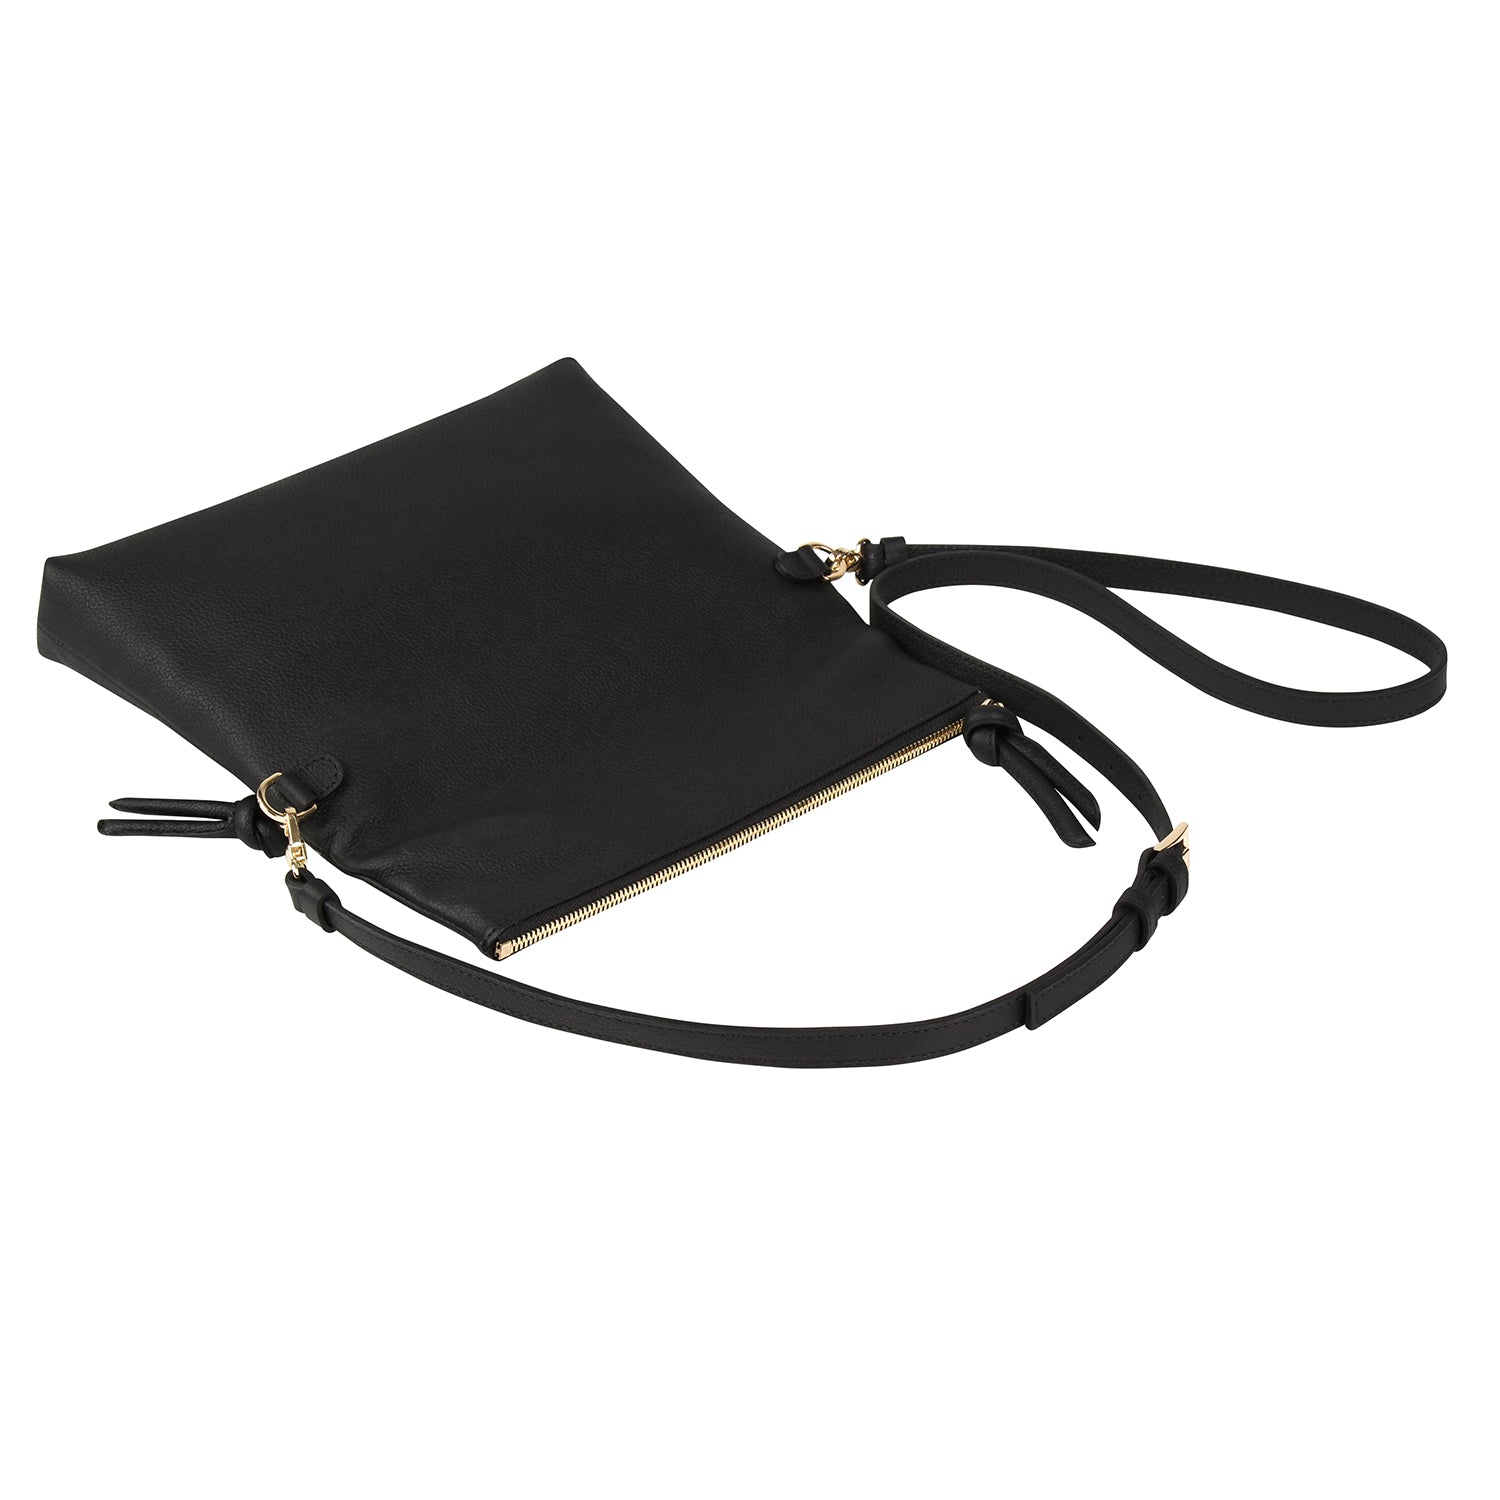 A convertible leather black crossbody bag for women with a zipper that could be used as a clutch in the evening.